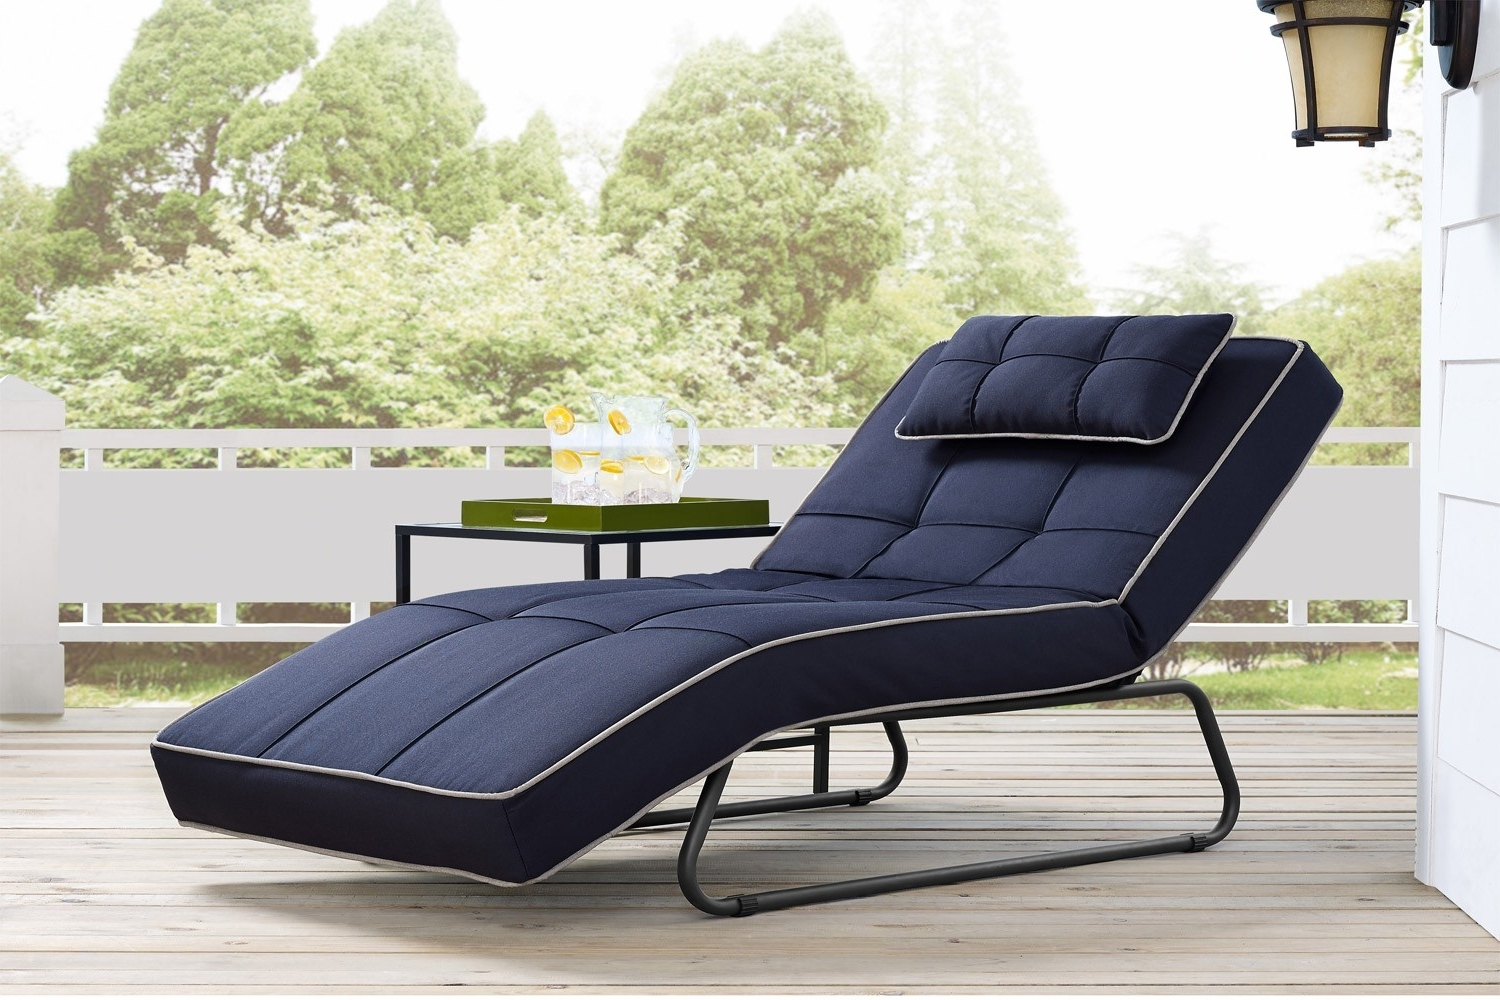 Outdoor Futon Chaise Bayshore (View 12 of 15)